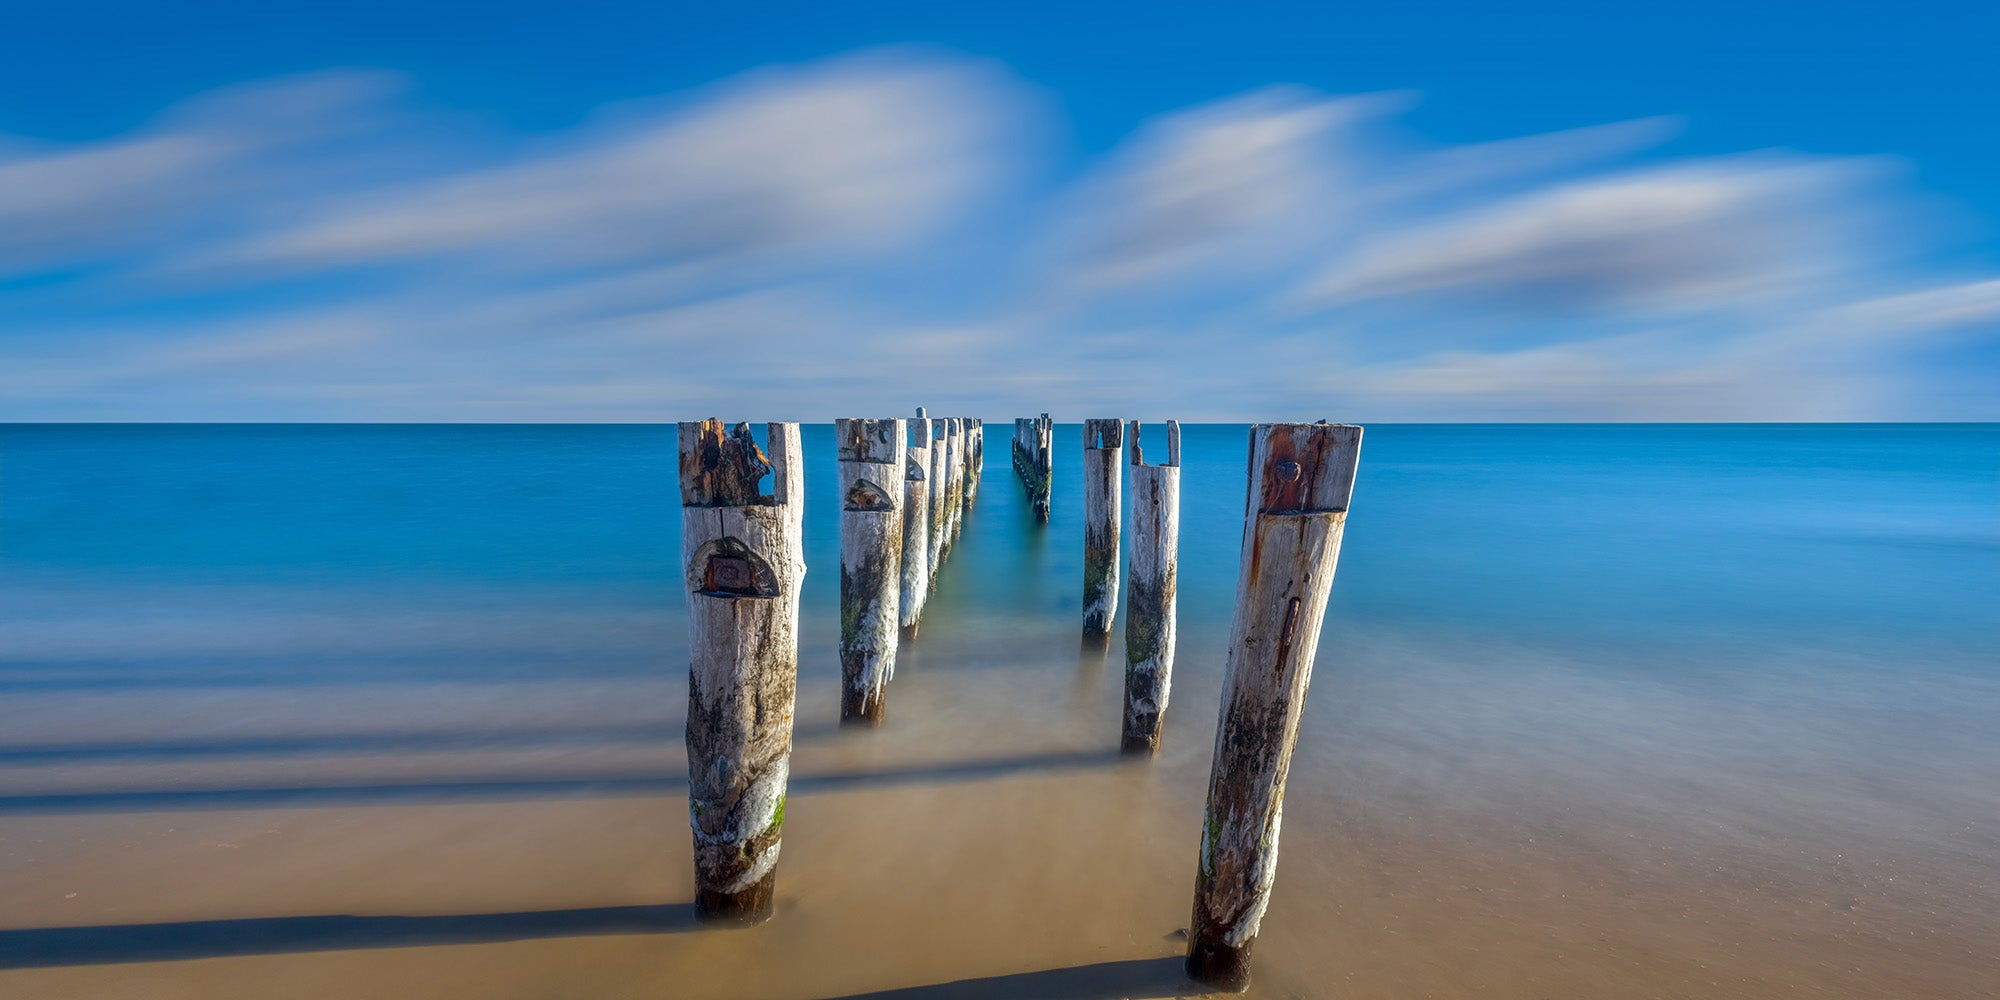 Landscape photograph of decaying pilings on a beach in Falmouth, Massachusetts - by Jonathan Elcock